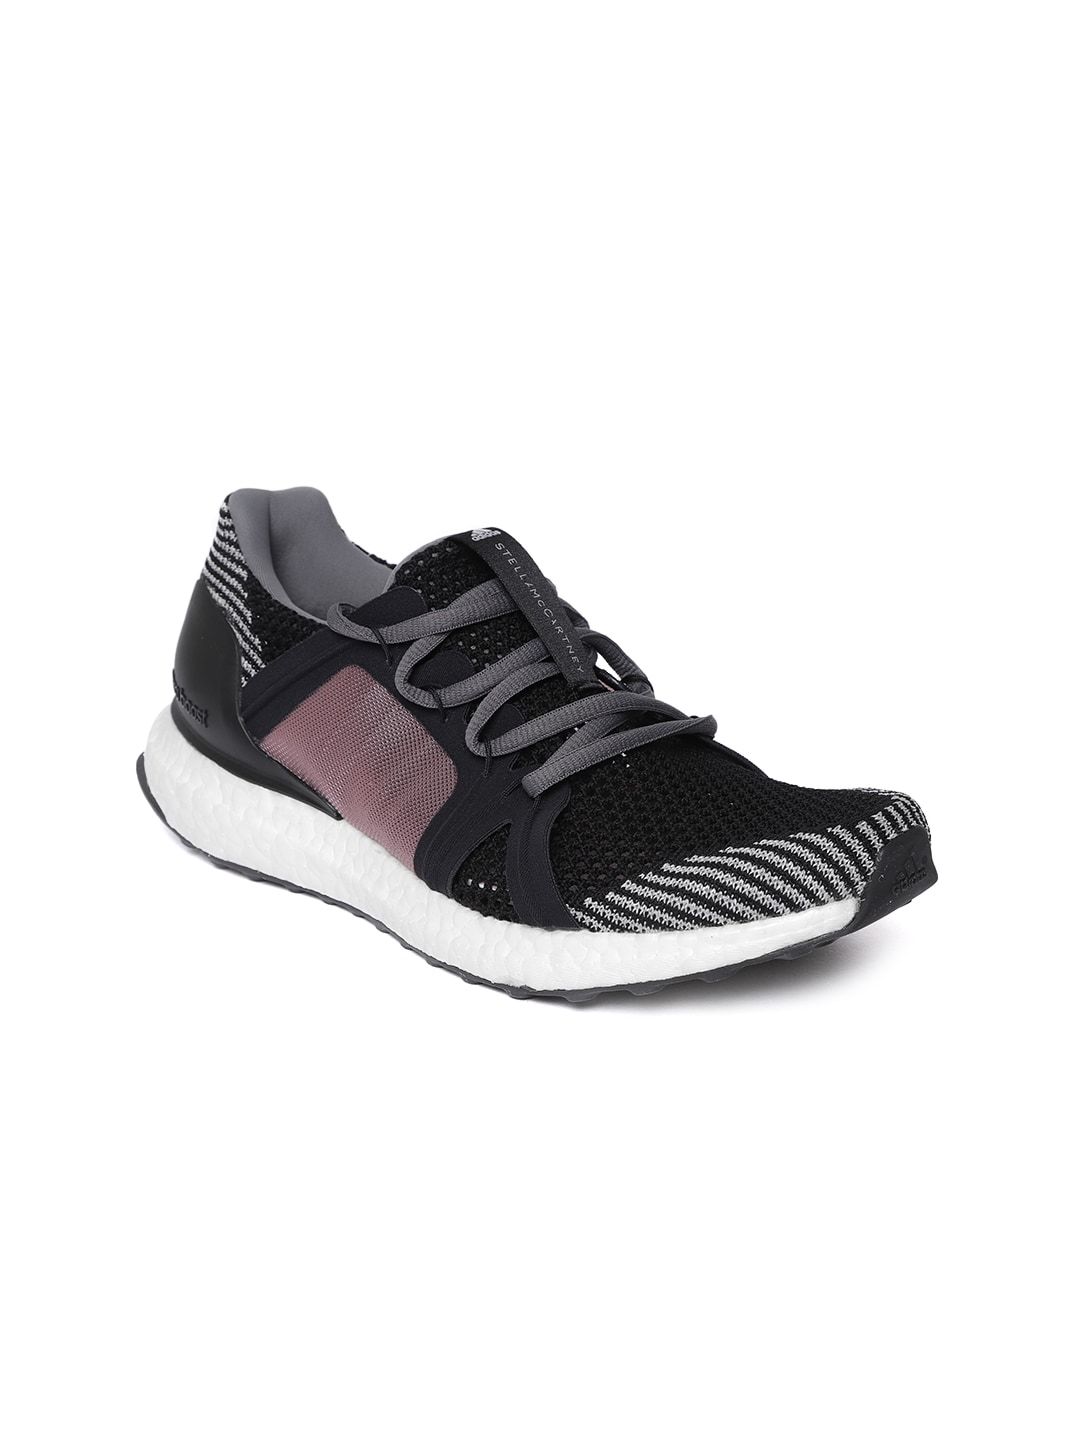 0d8928955211ad Adidas Casual Shoes